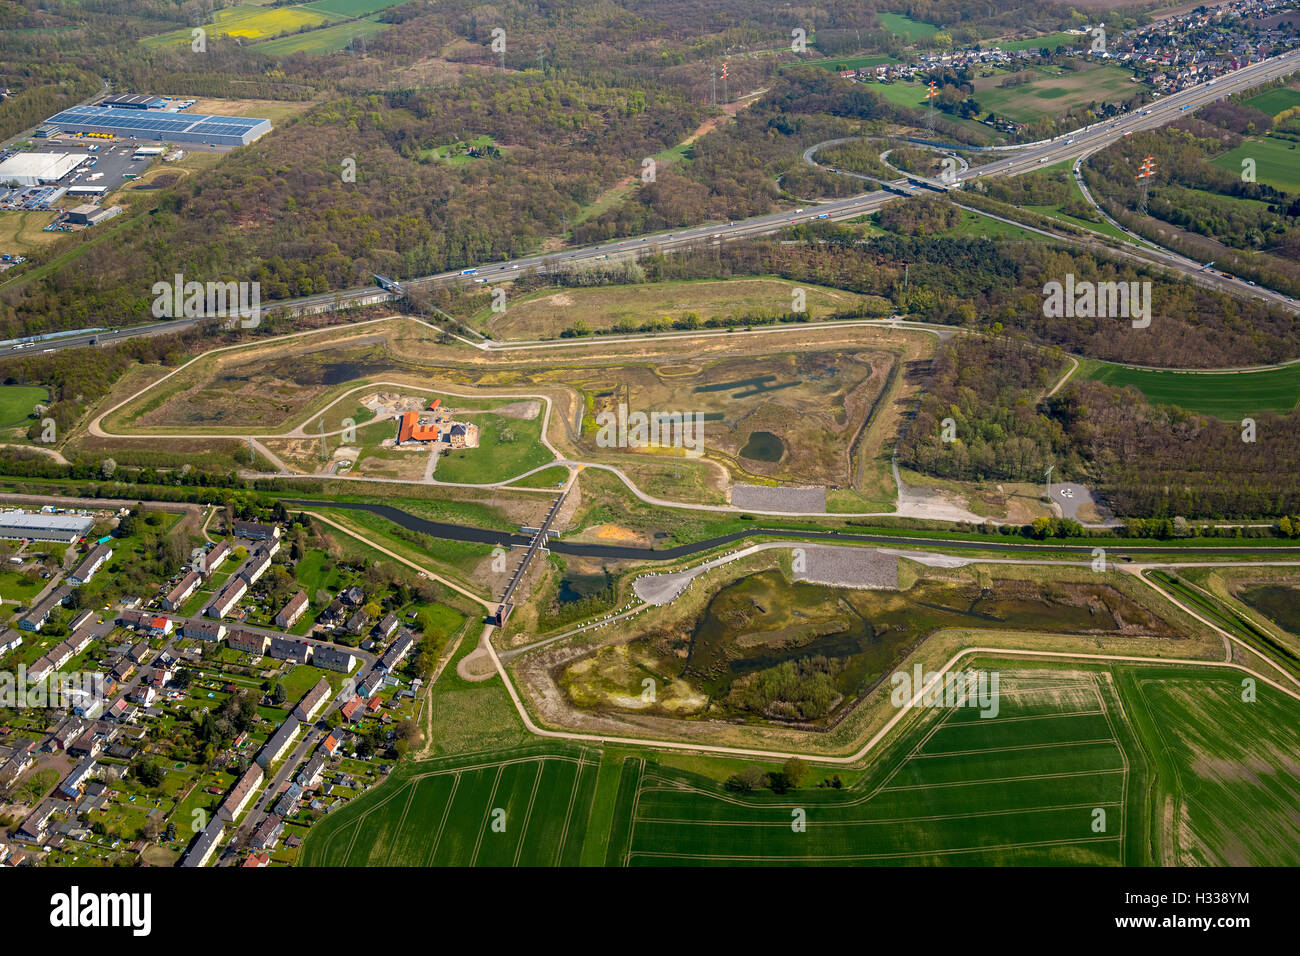 Rainwater retention basin, river Emscher in the Mengede district, water management, Castrop-Rauxel, Ruhr district - Stock Image